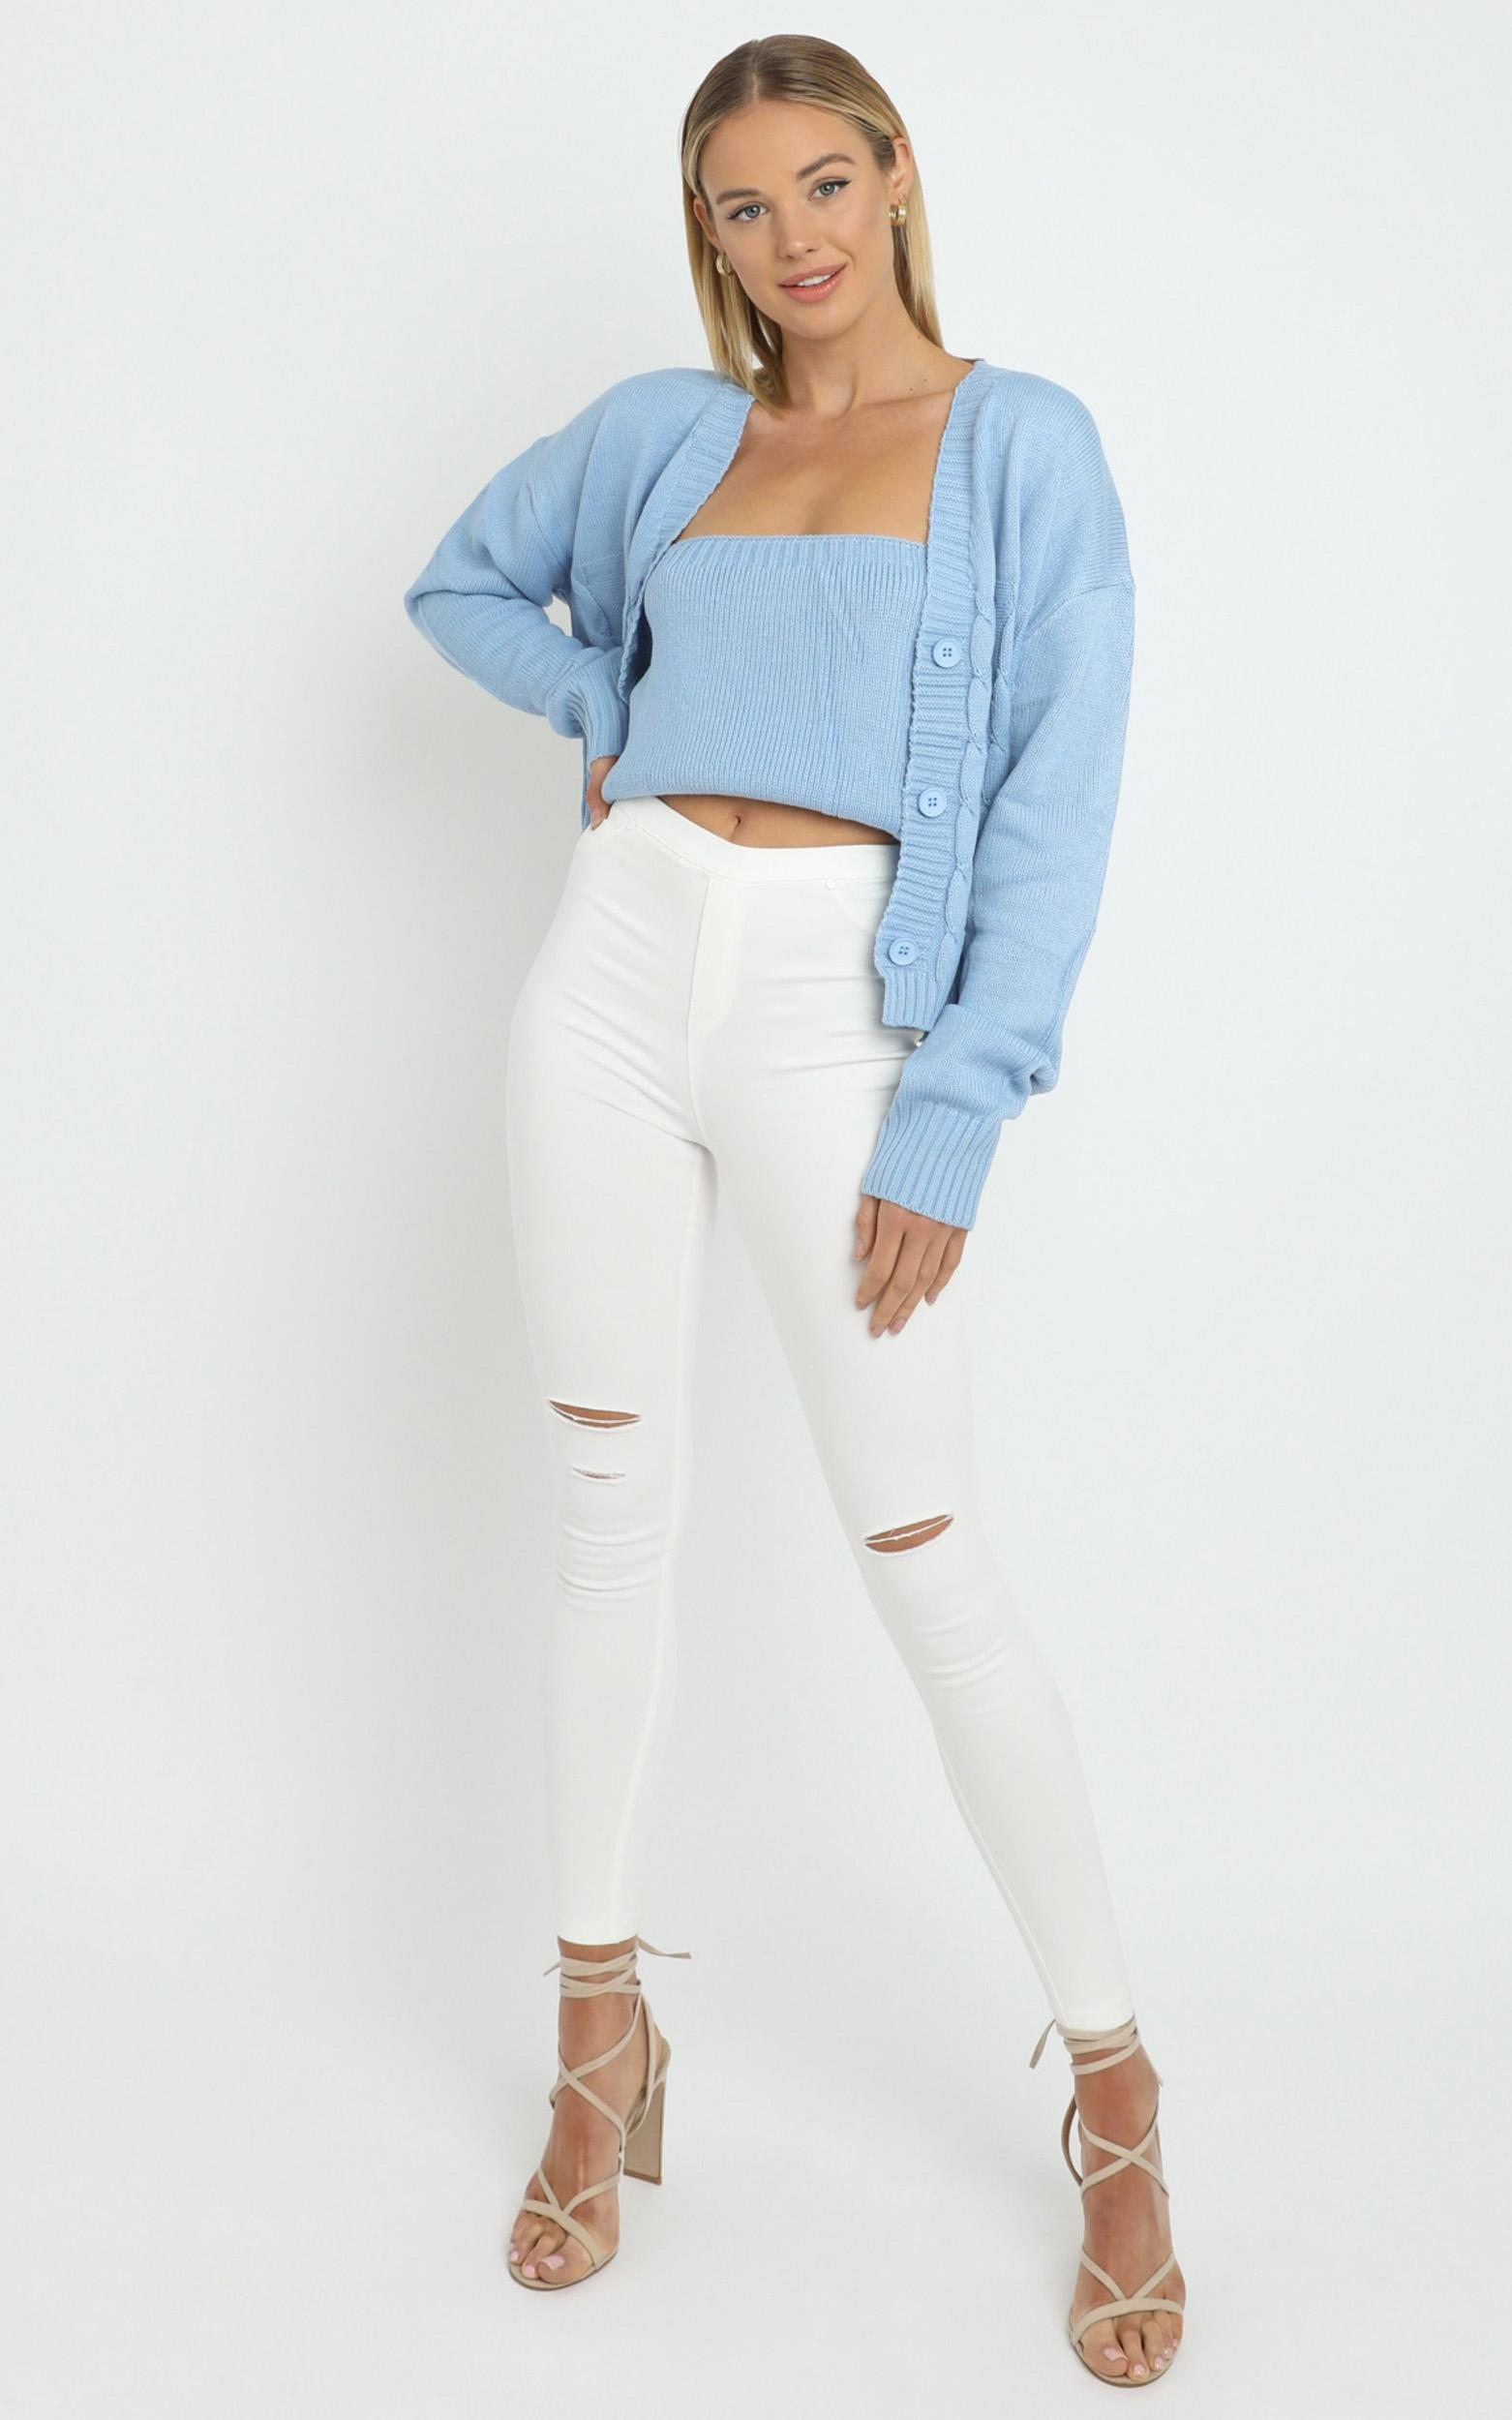 Poppy Knit Cardigan in Blue - L/XL, BLU1, hi-res image number null